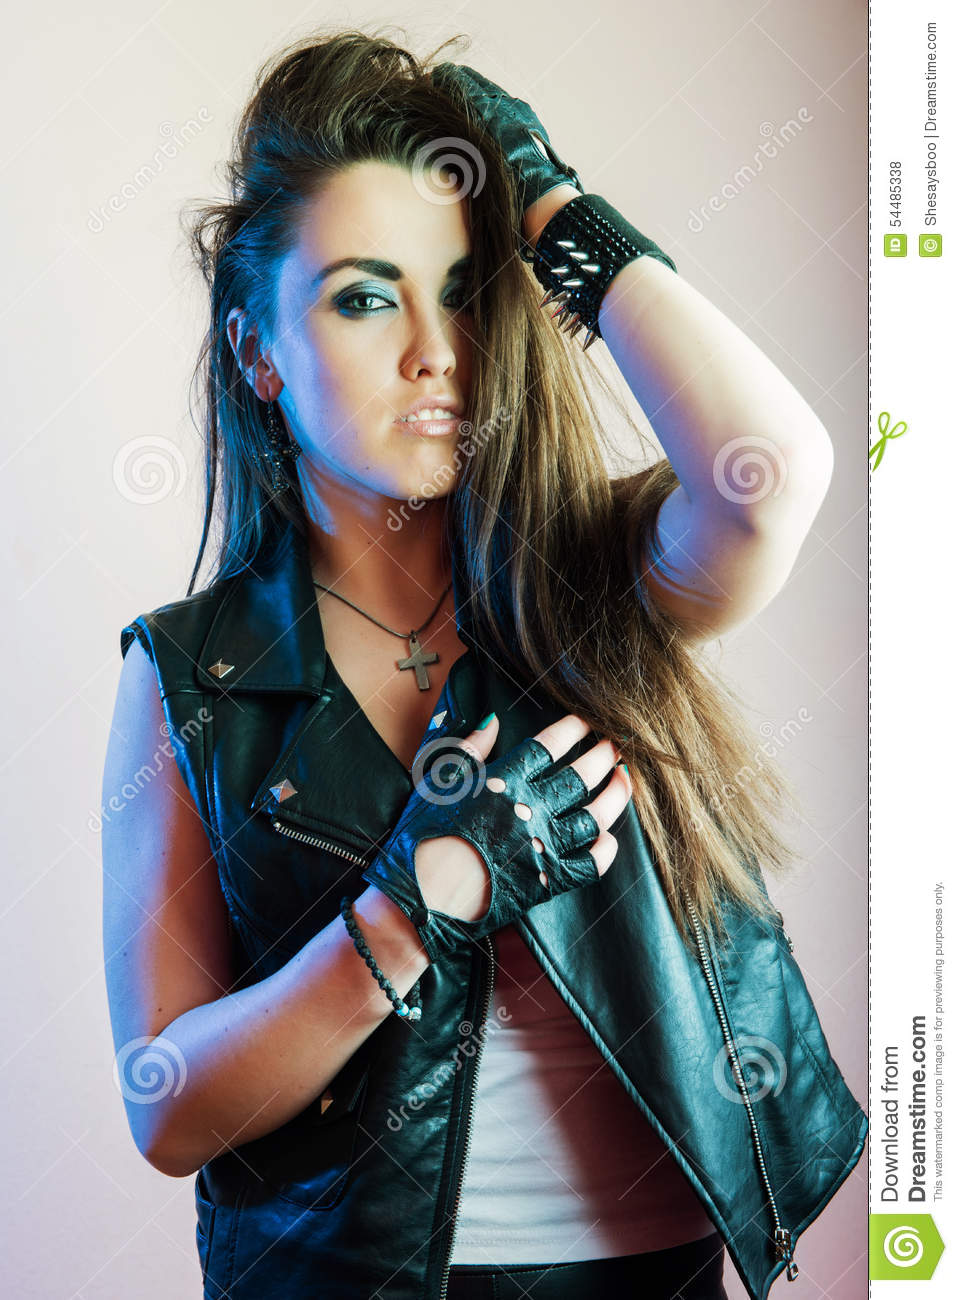 Young Beautiful Punk Girl Stock Photo Image Of Spring -7398